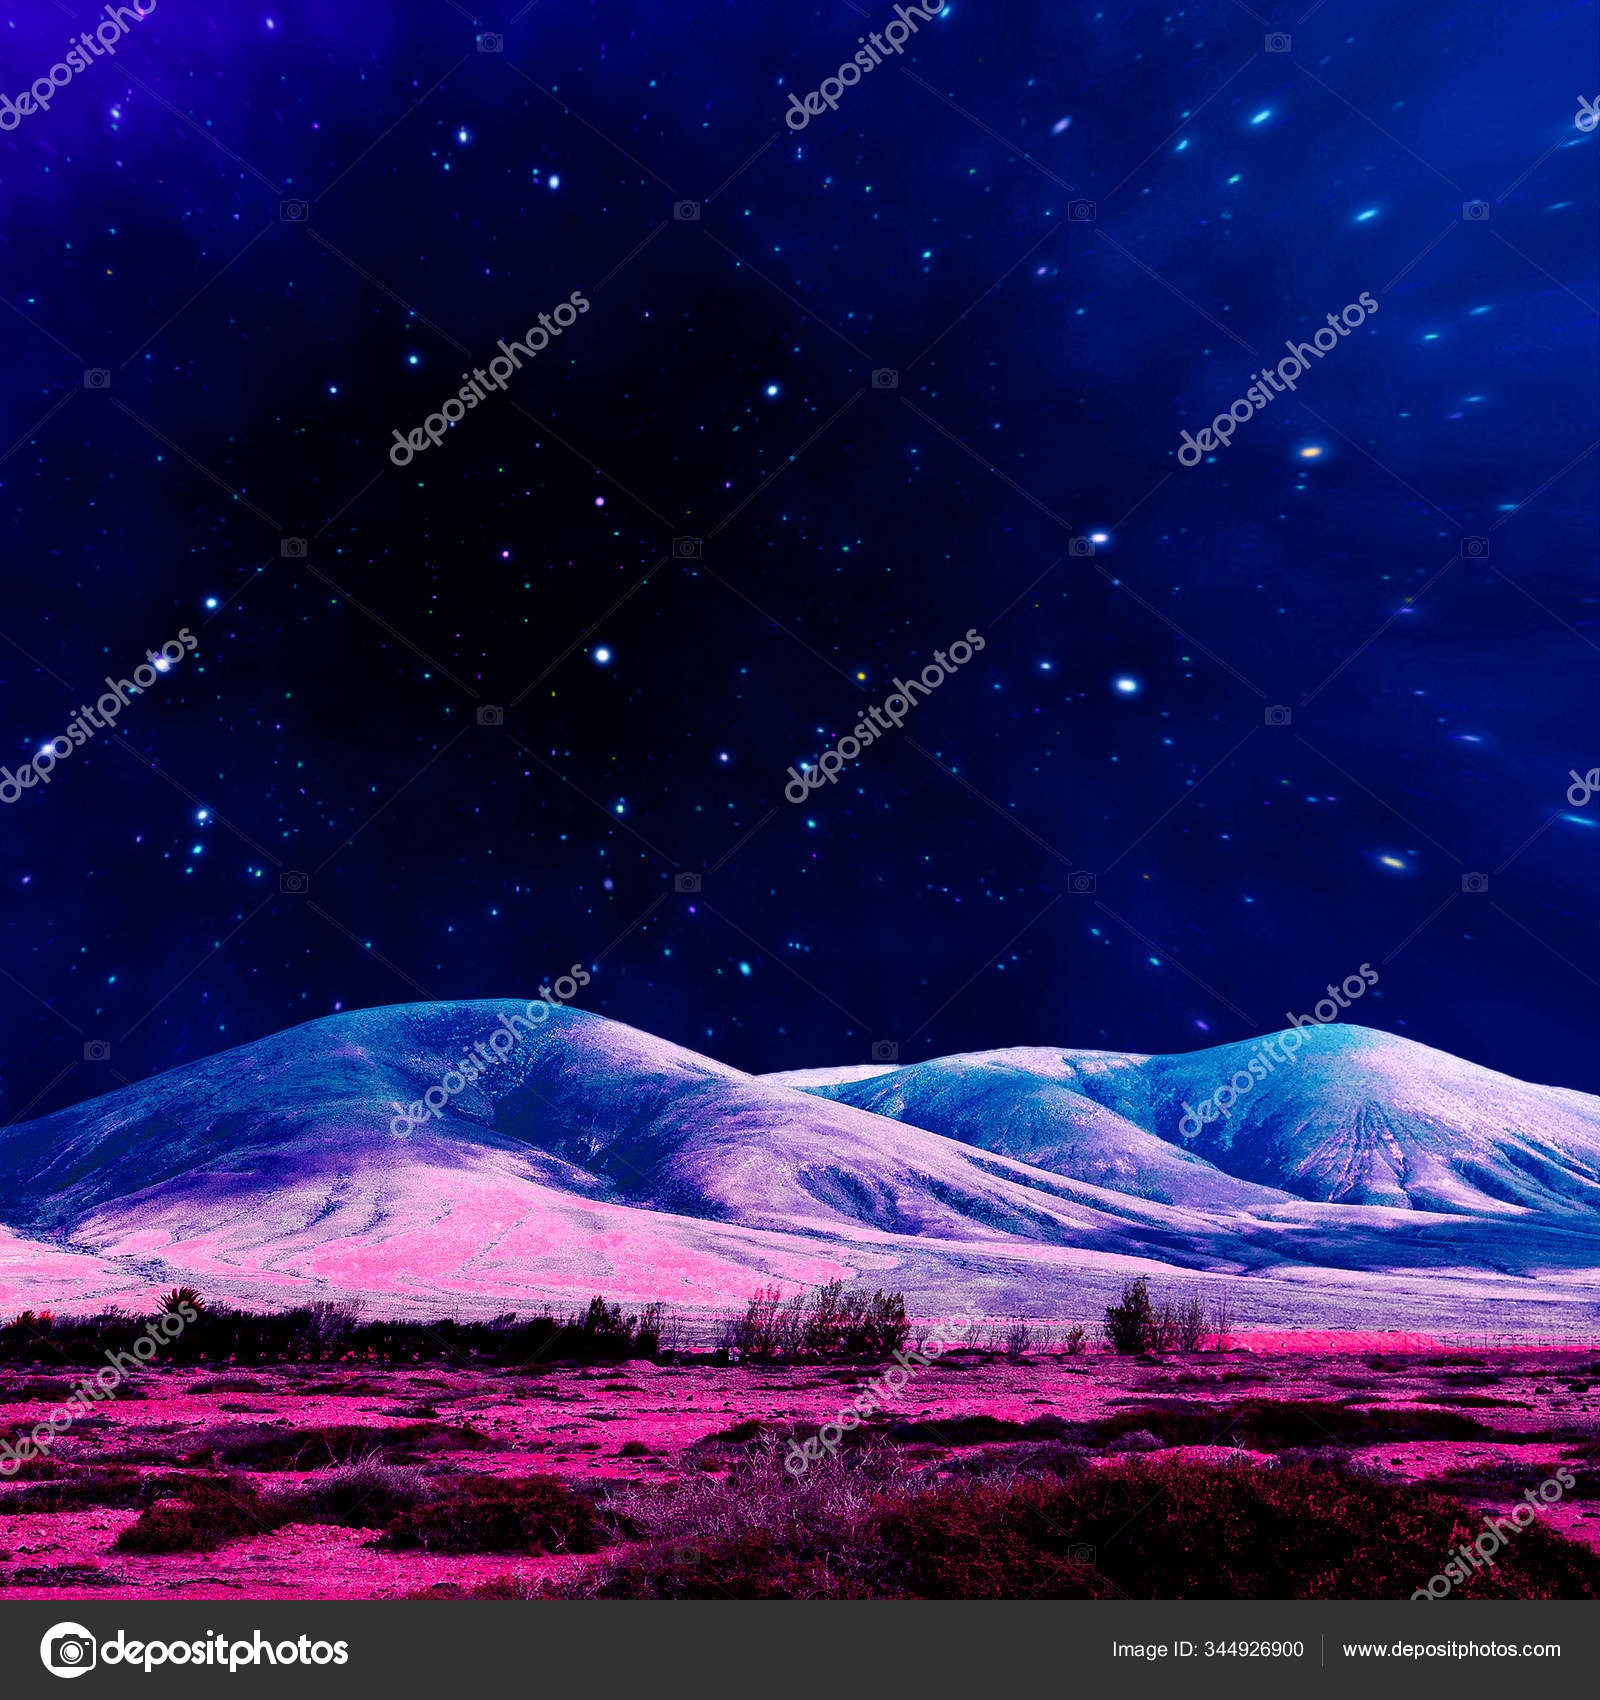 Aesthetic Collage Wallpaper Mountains And Starry Cosmic Sky